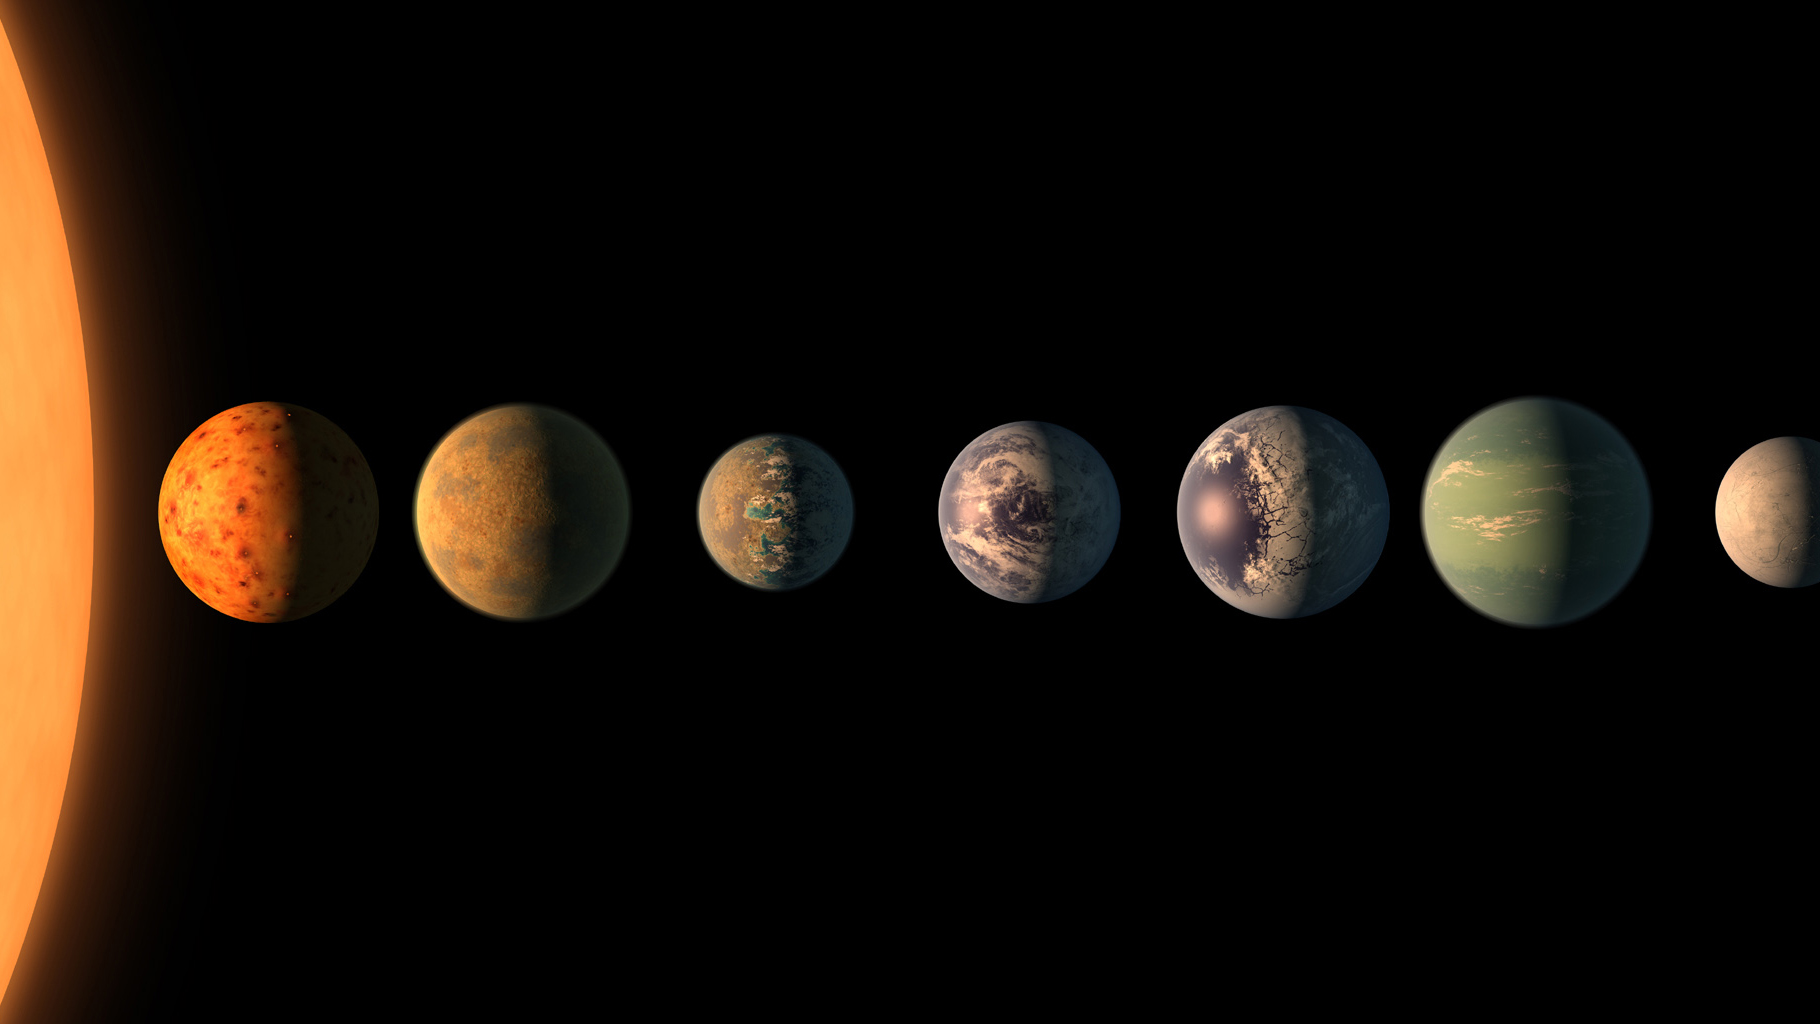 NASA Releases First Images Of TRAPPIST-1 System